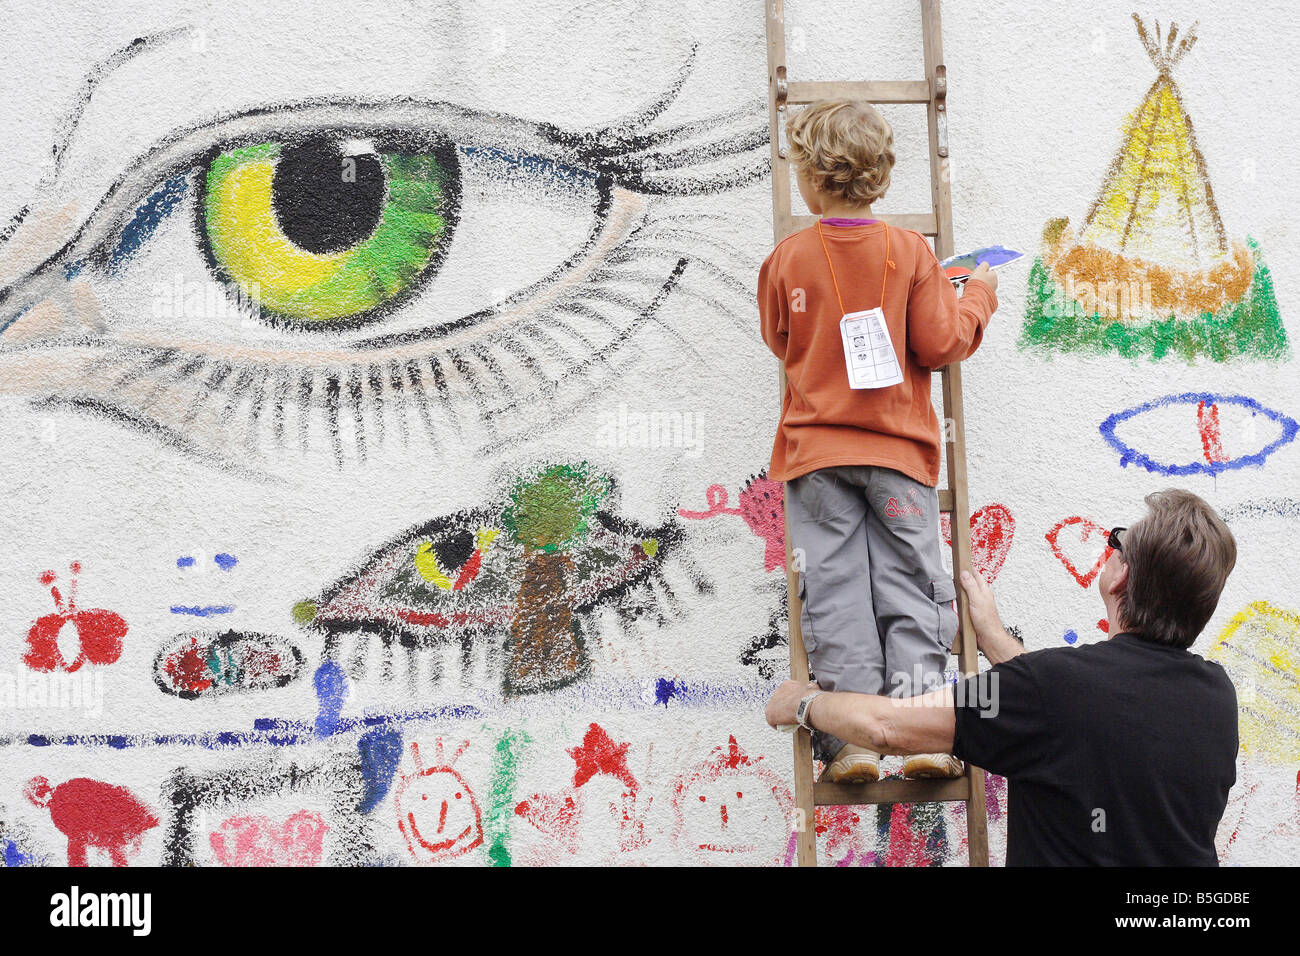 Boy standing on a ladder and painting on a wall - Stock Image